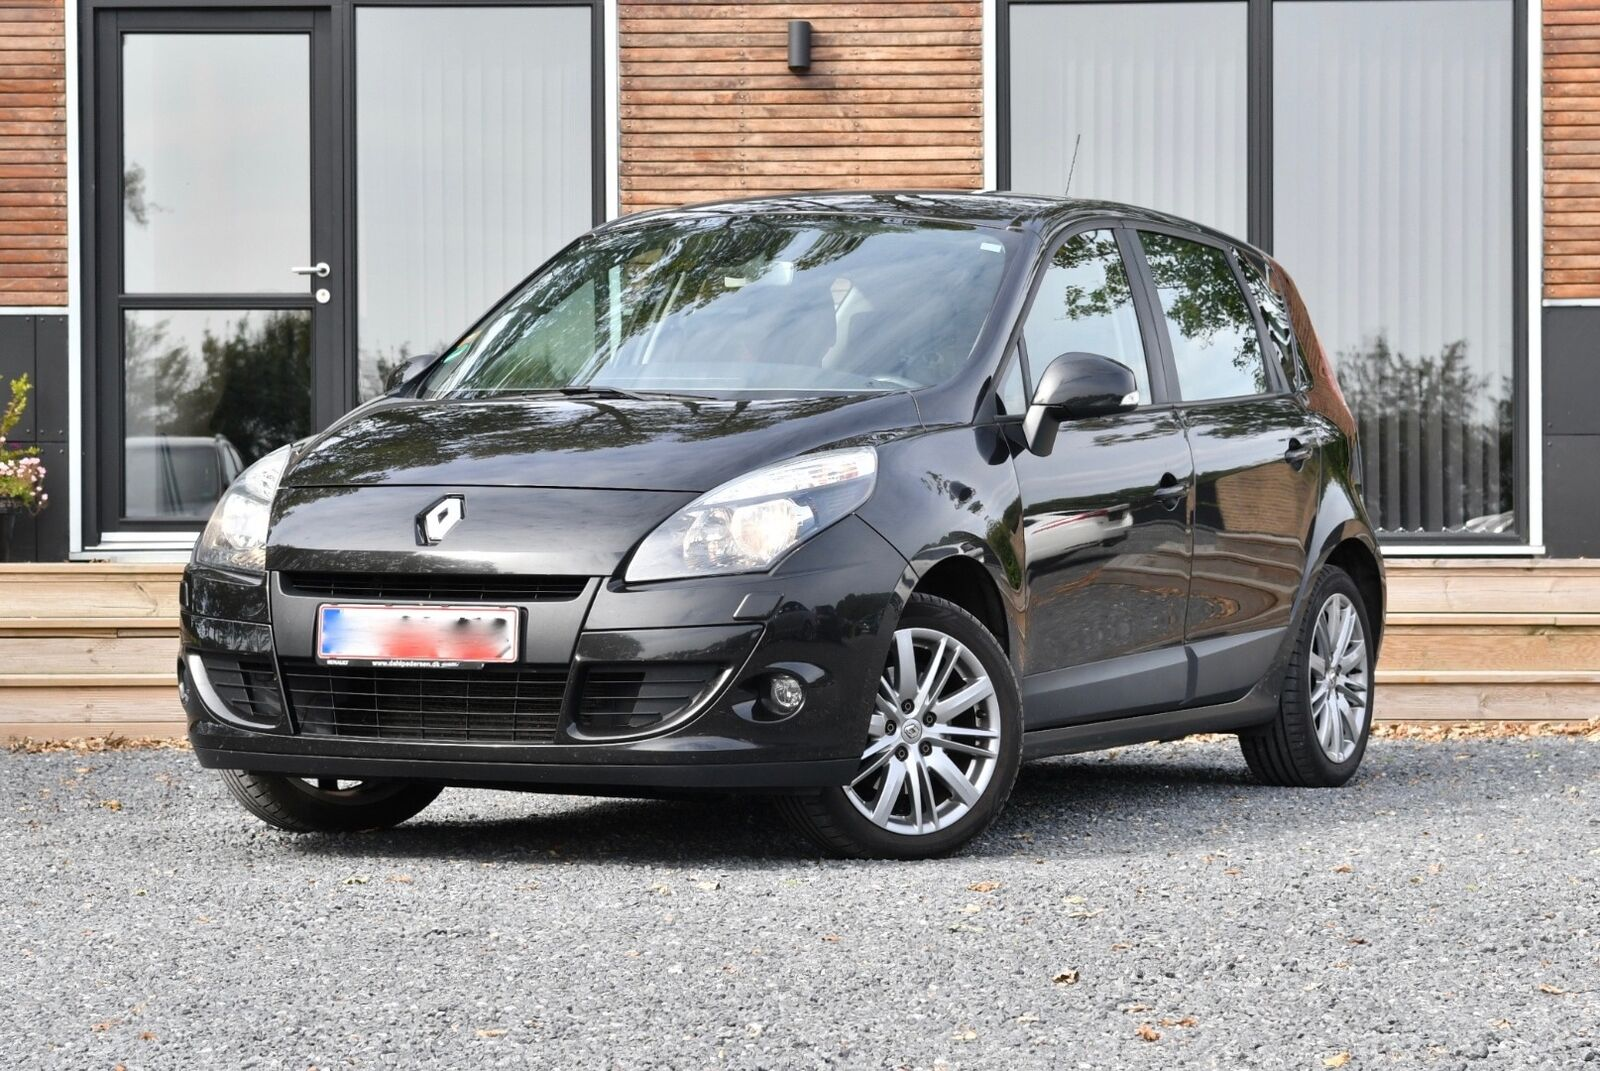 Renault Scenic III 1,9 dCi 130 Expression 5d